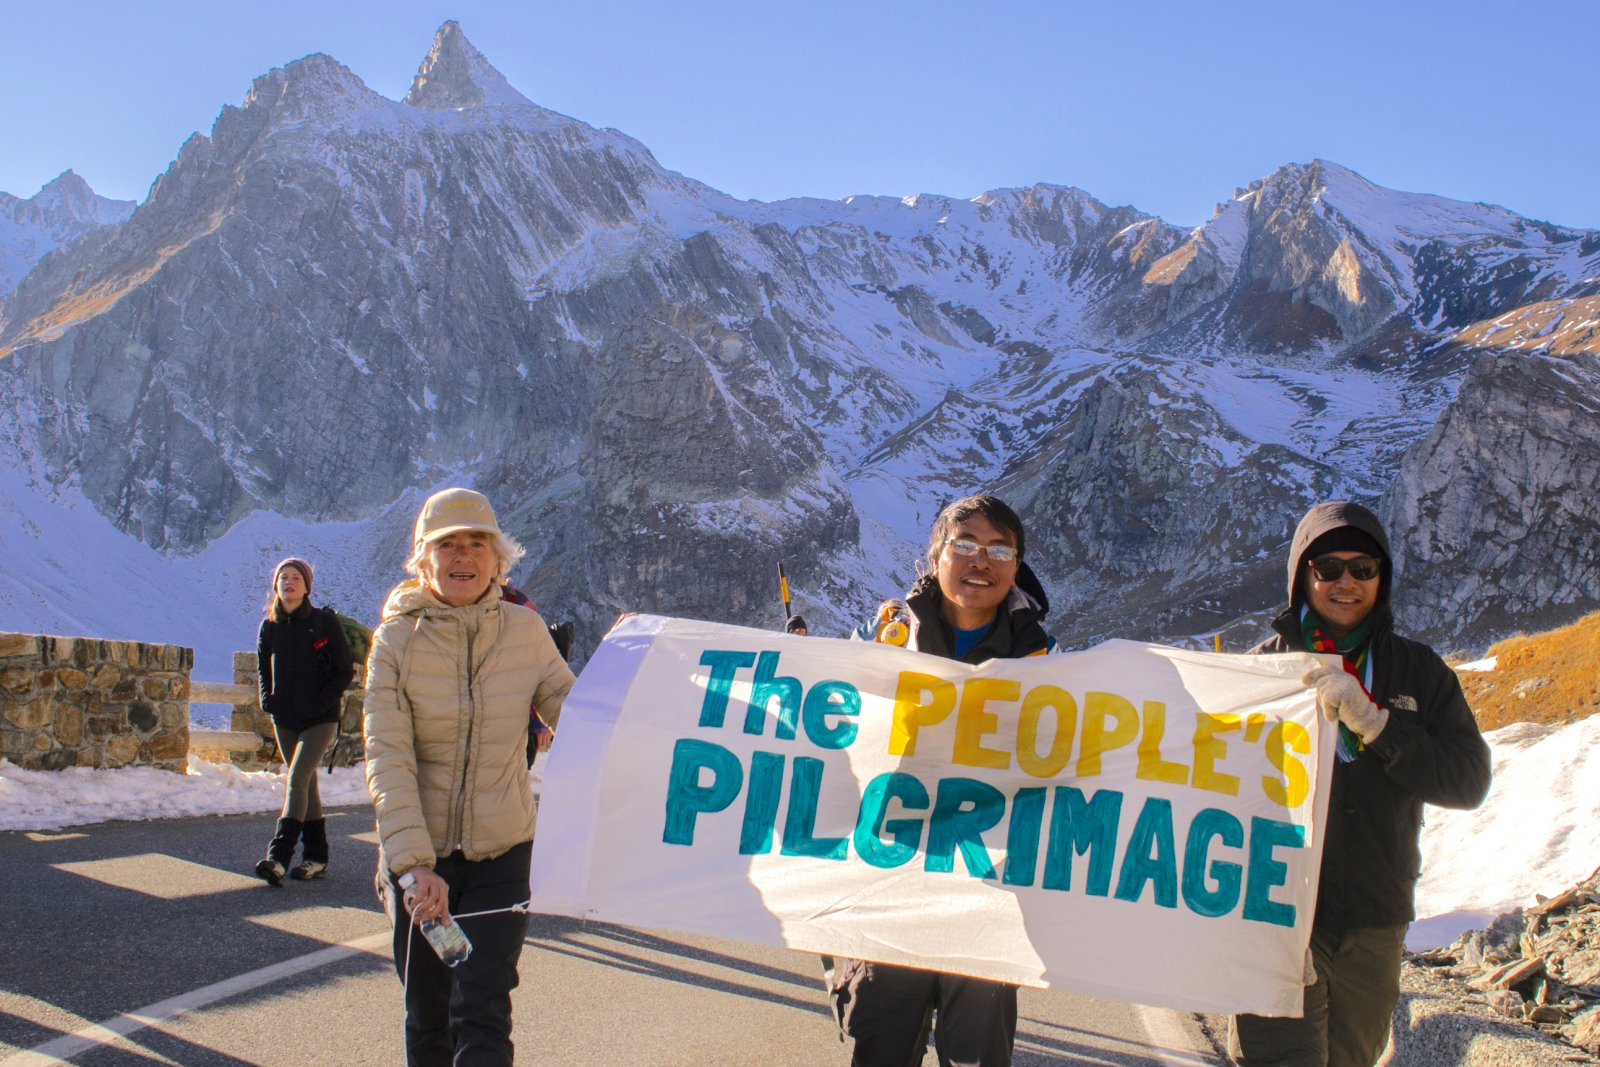 People's Pilgrimage Swiss Alps Yeb Sano